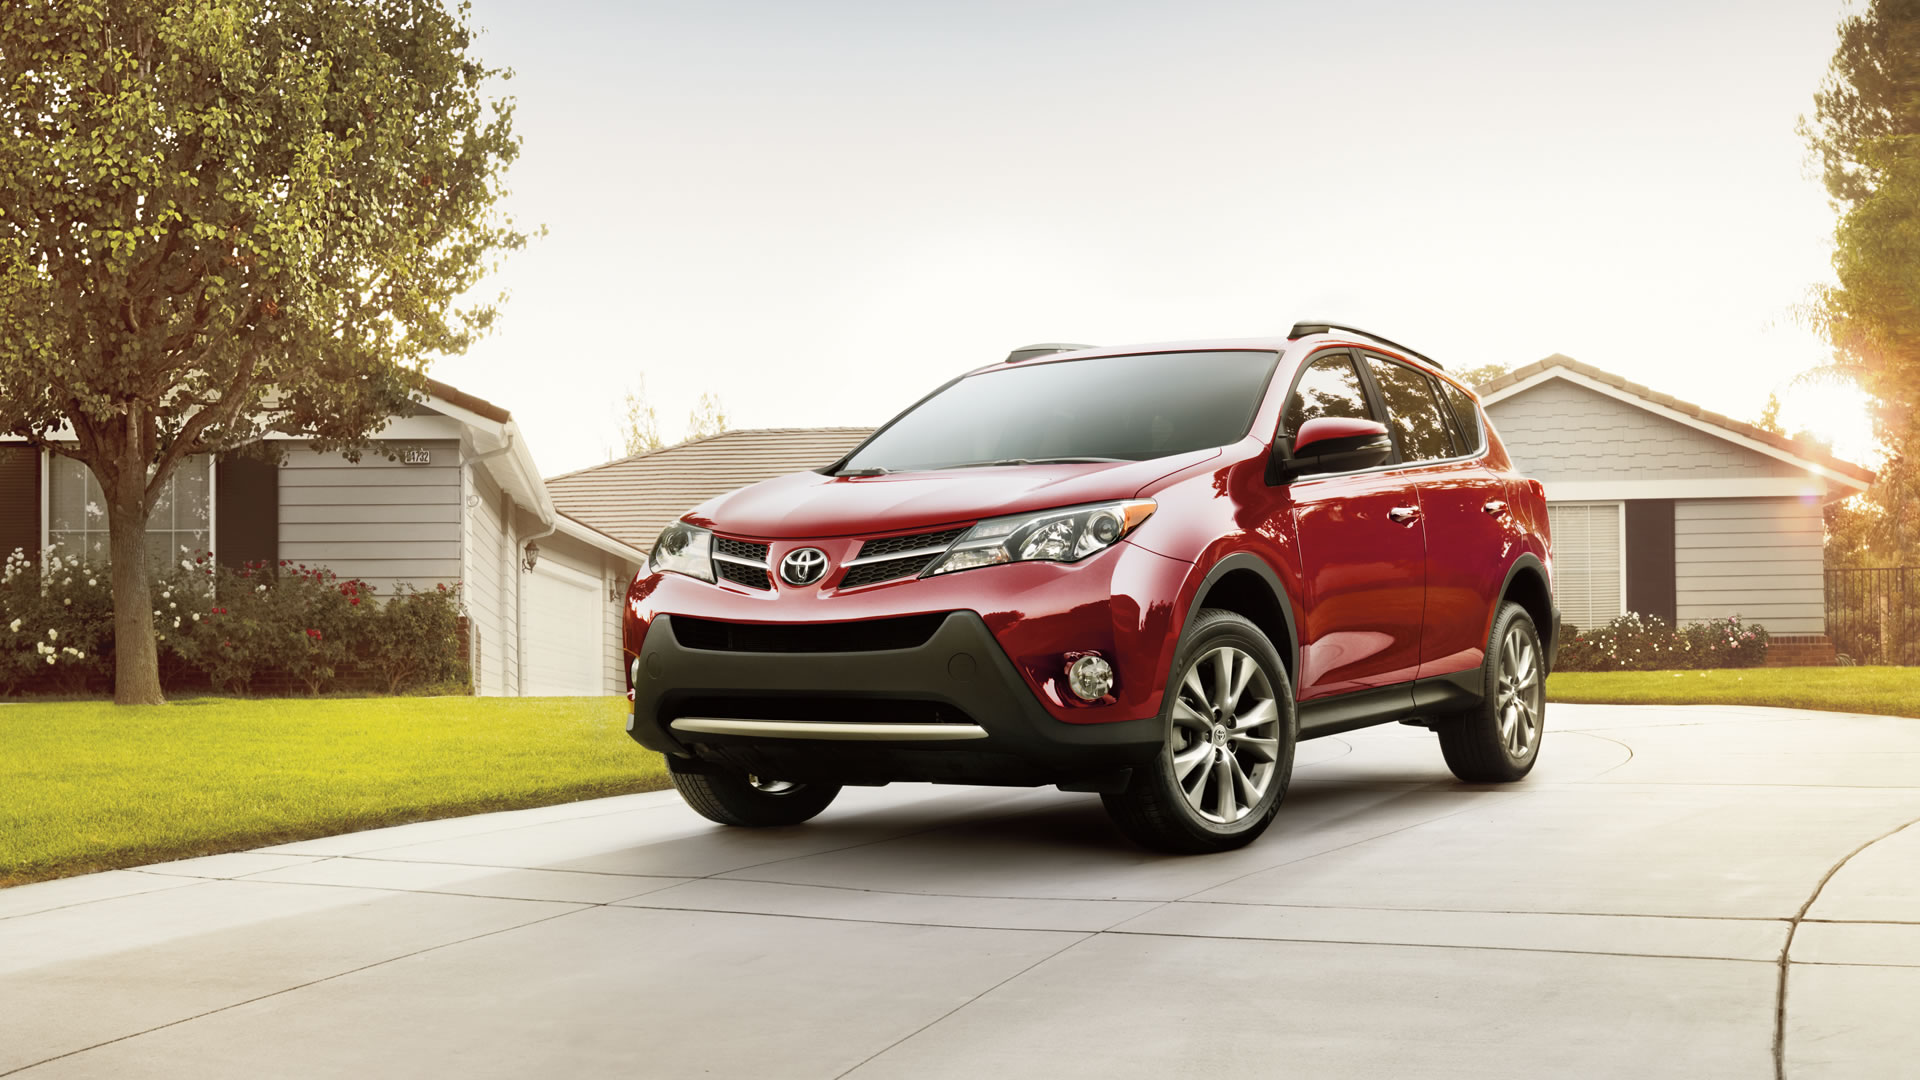 2015 toyota rav4 information and photos zombiedrive. Black Bedroom Furniture Sets. Home Design Ideas